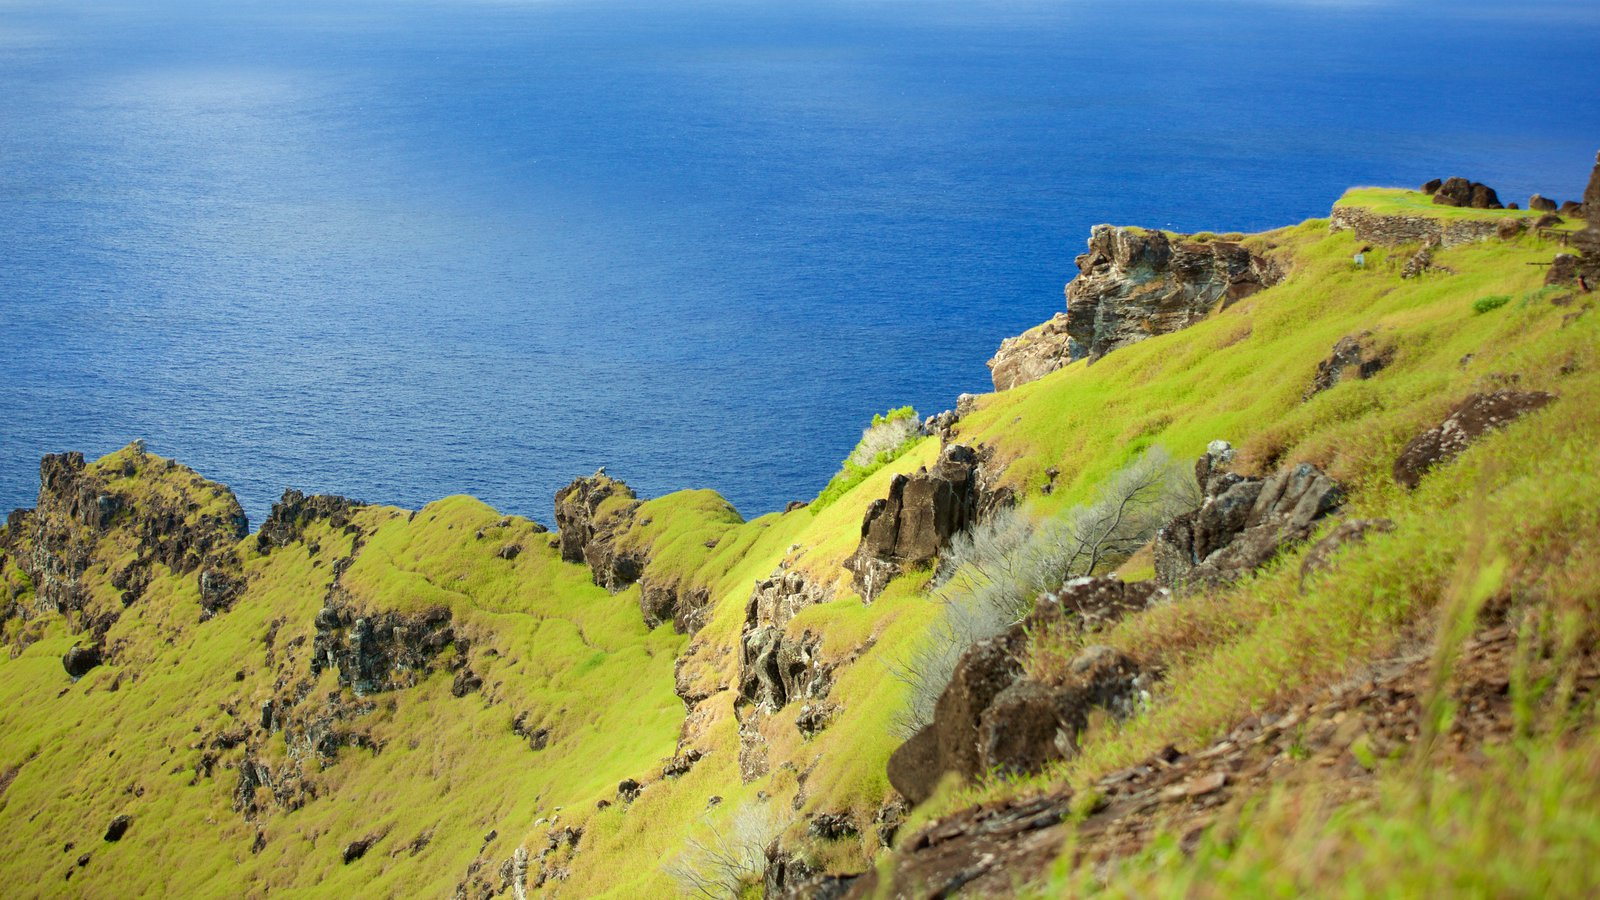 Easter Island which includes general coastal views and mountains